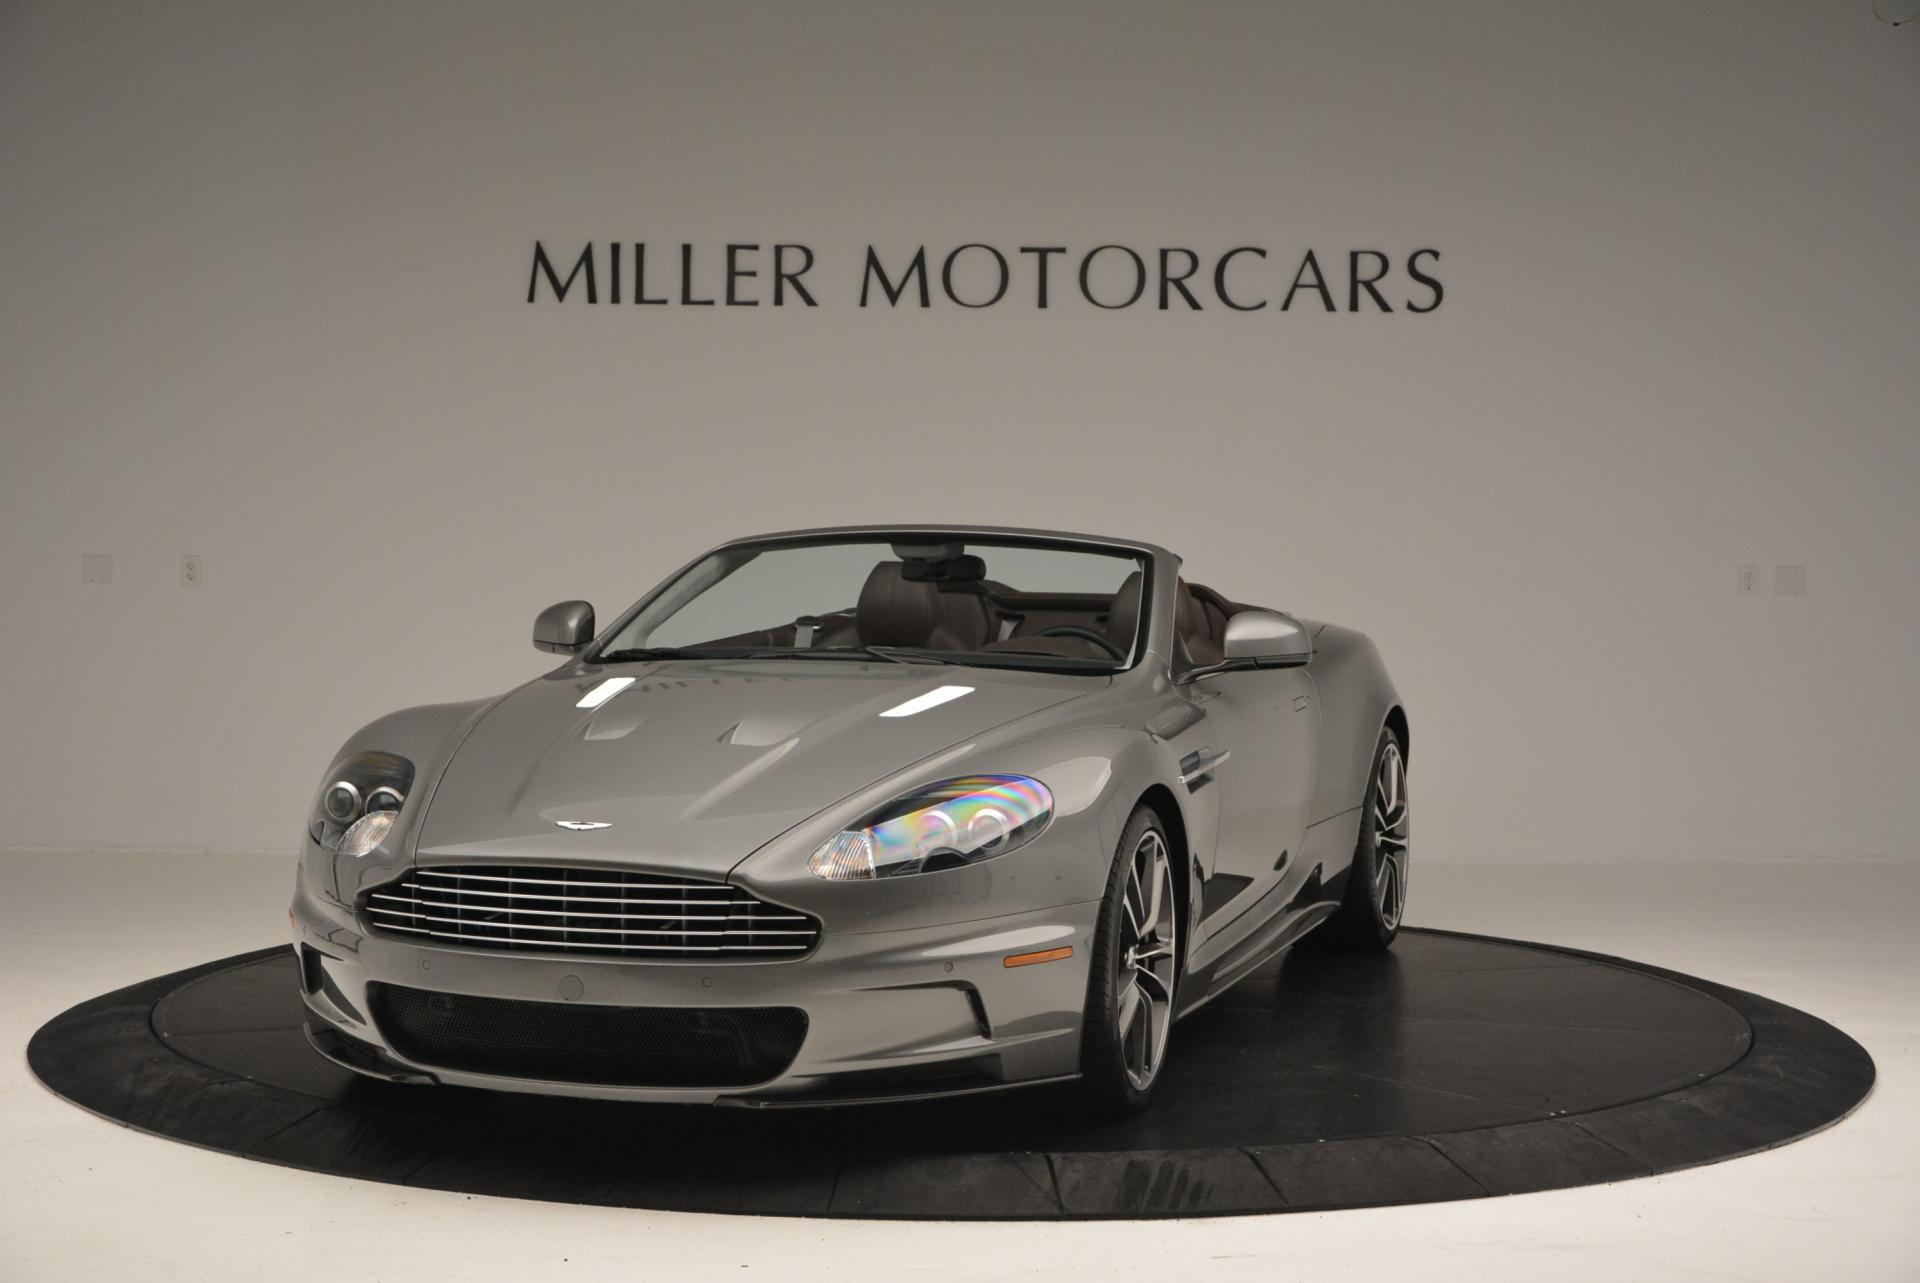 Used 2010 Aston Martin DBS Volante for sale Sold at Bugatti of Greenwich in Greenwich CT 06830 1